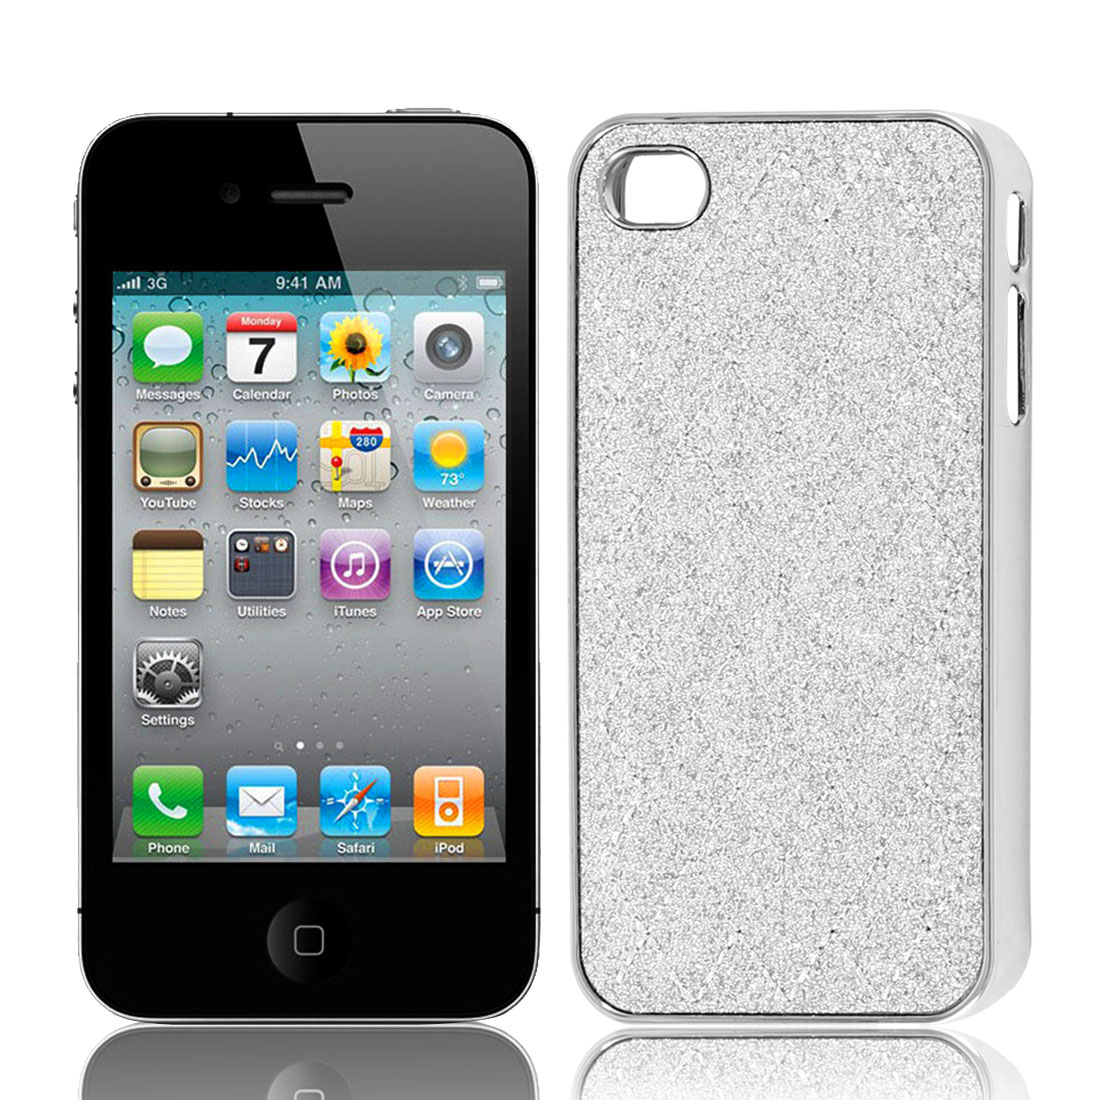 Silver Tone Glitter Powder Argyle Pattern Hard Back Case Cover for iPhone 4 4G 4S